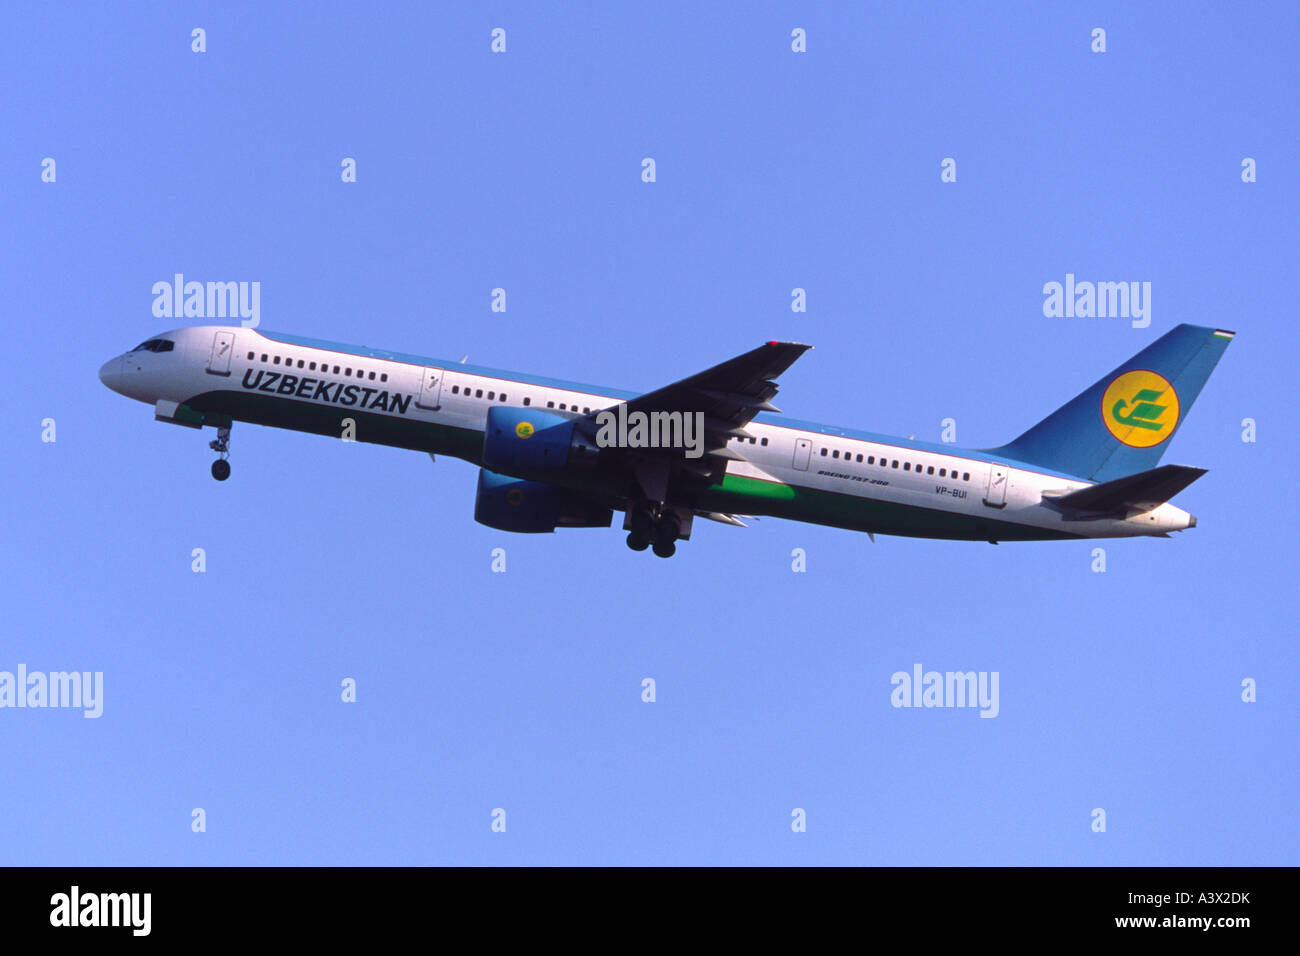 Boeing 757 operated by Uzbekistan Airways - Stock Image